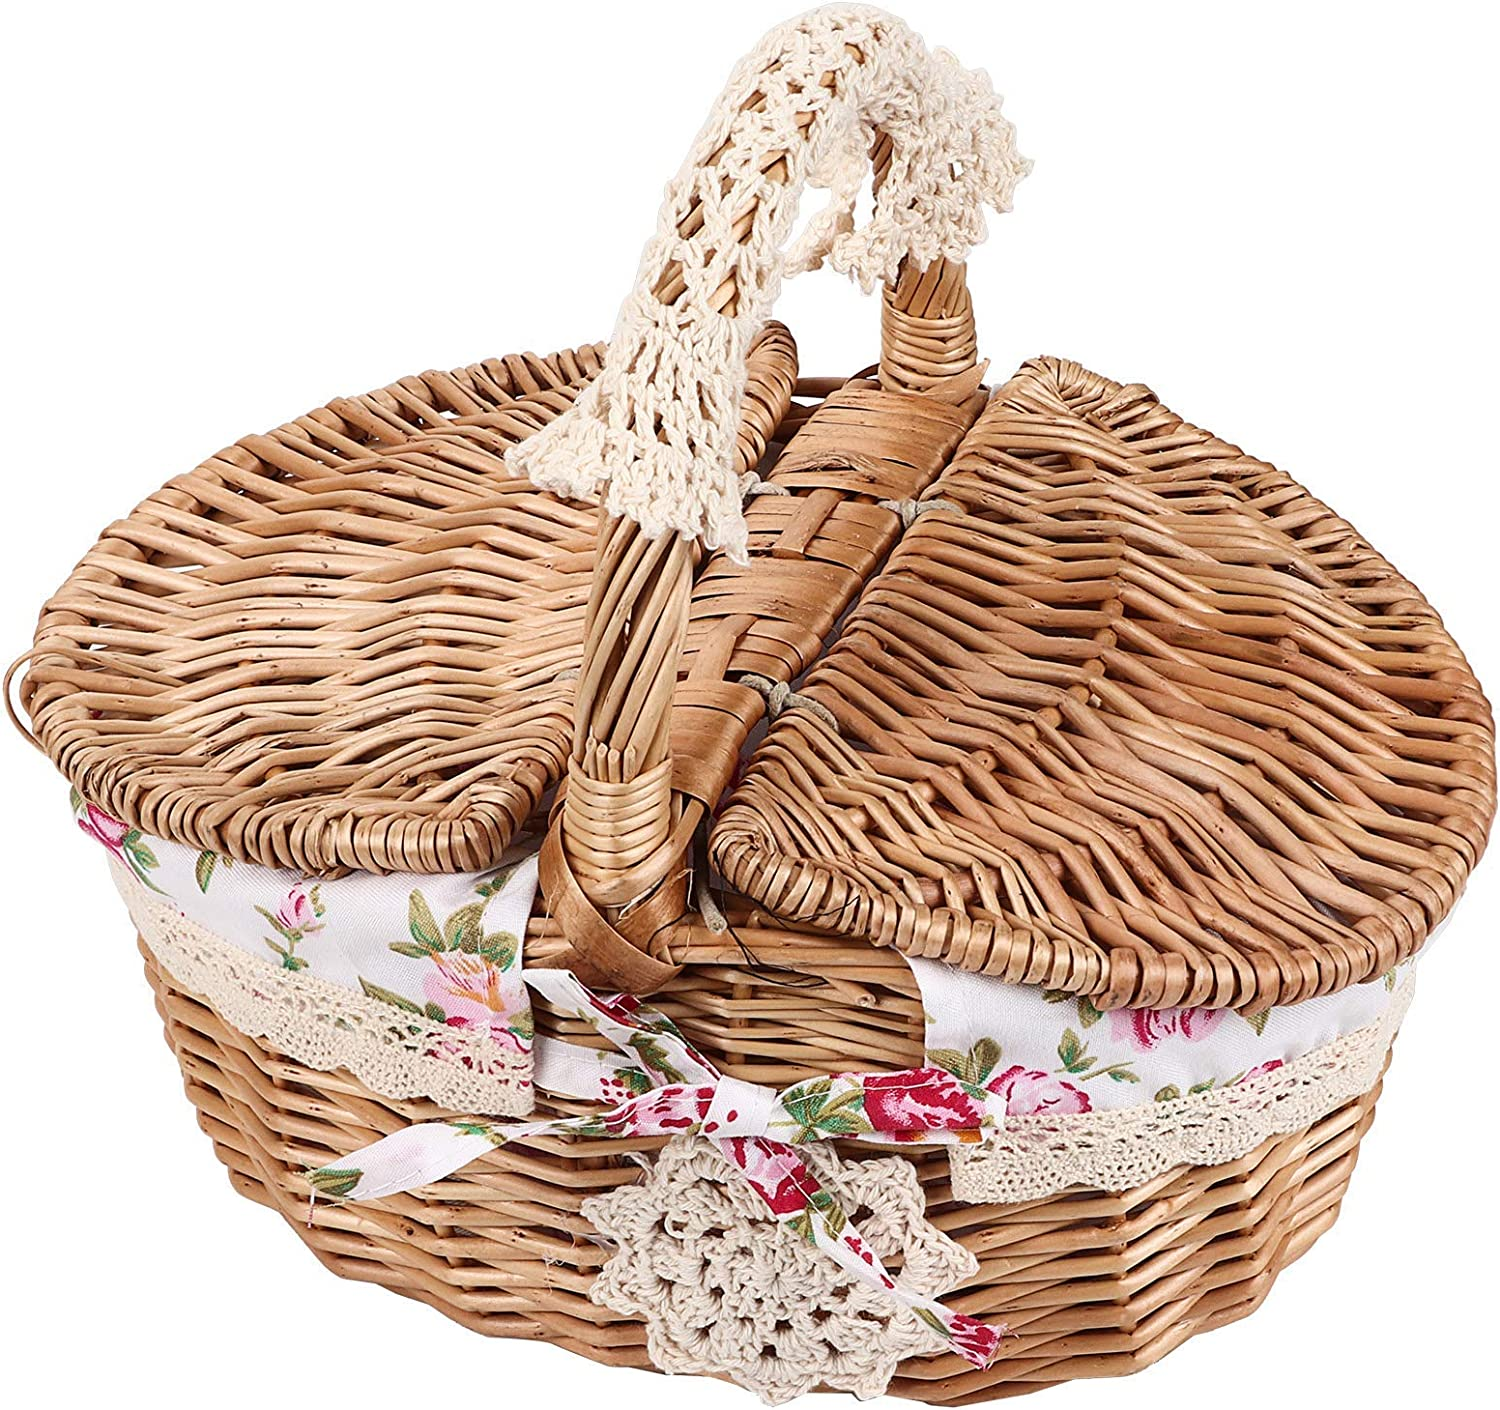 QNZ Picnic Basket,with Double Lids,Floral Lined Picnic Basket Rattan Food Storage Container Picnic Basket,Hand Woven Basket